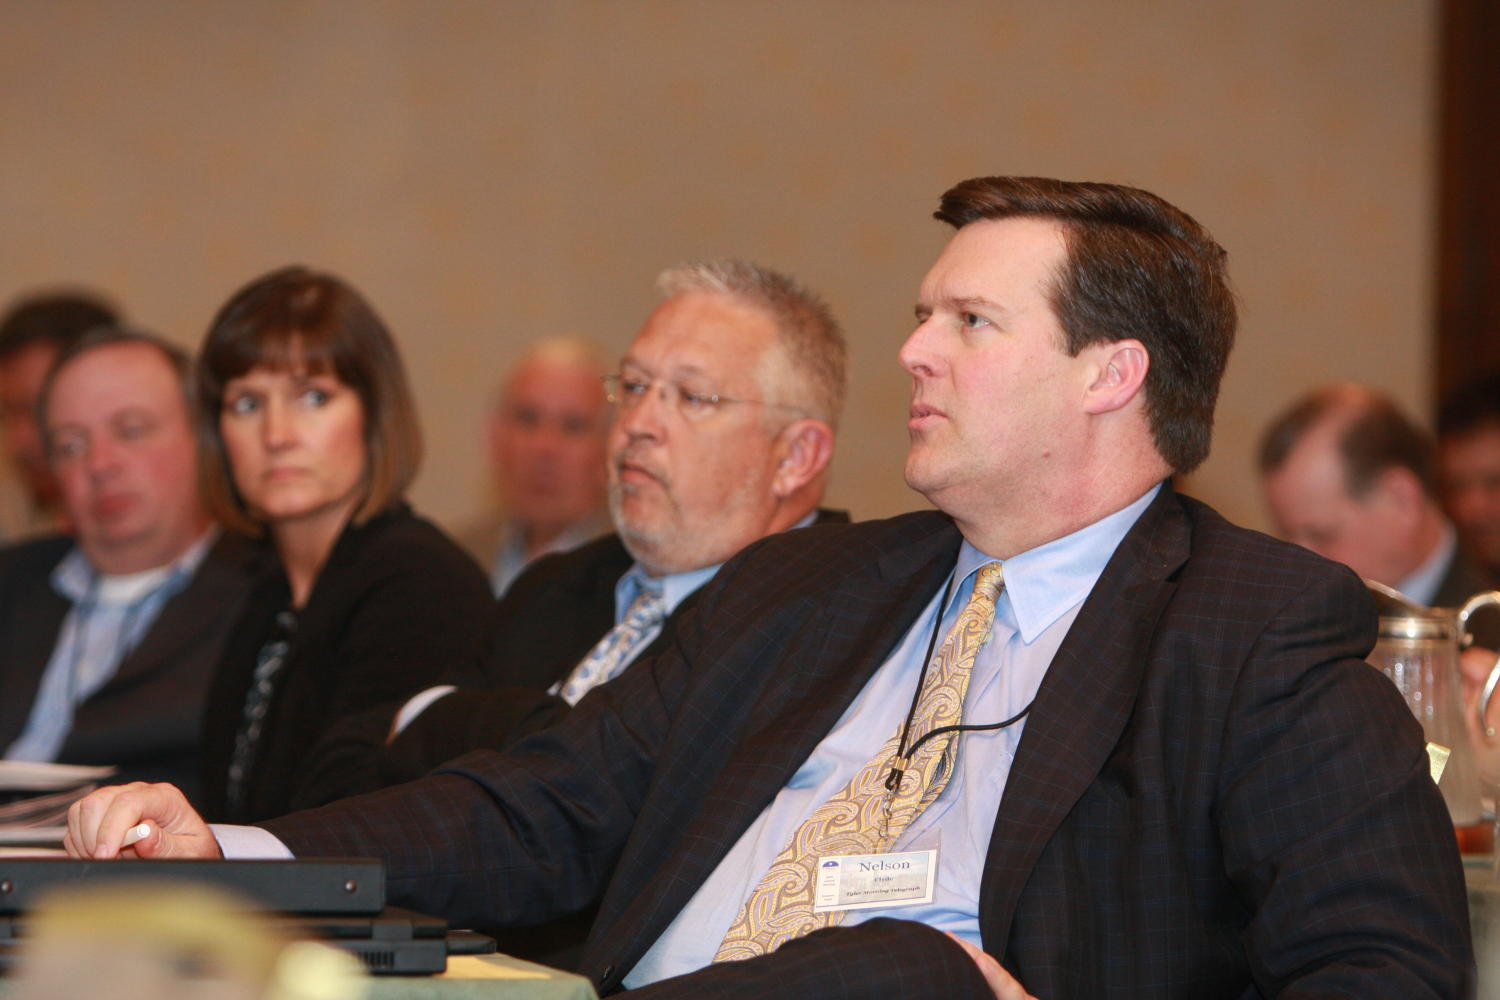 [Nelson Clyde IV seated and attending a TDNA conference], Photograph of Nelson Clyde IV seated at elongated tables with other guests as they are attending the 2010 Texas Daily Newspaper Association annual meeting held in Houston, Texas. Sandra Aven can be seen seated at the same table as Clyde.,